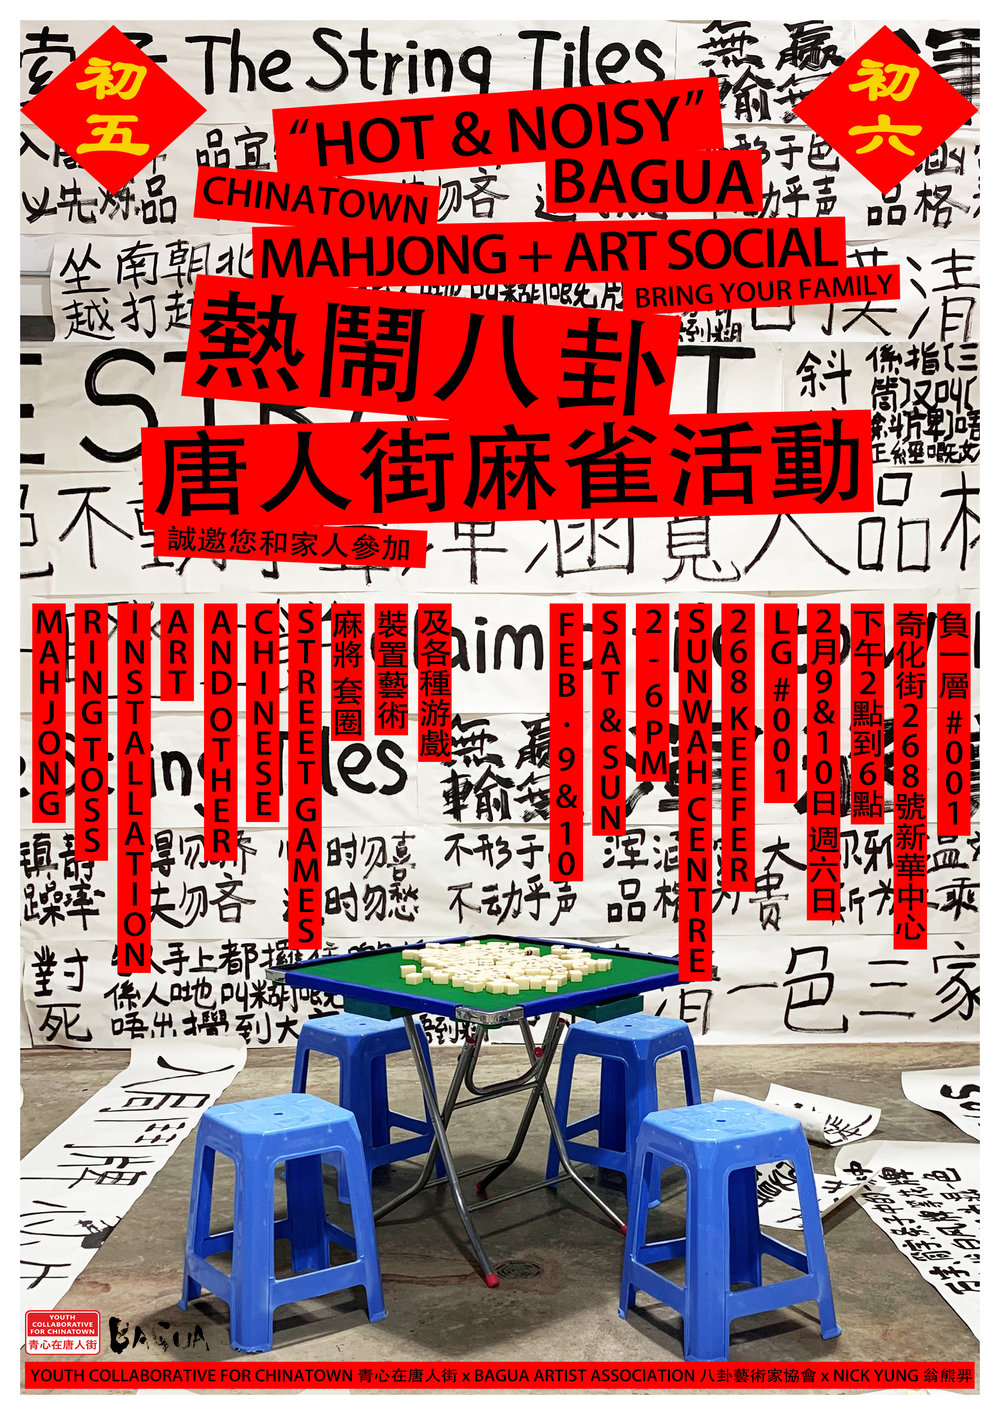 Poster by Bagua Art Association 八卦艺术家